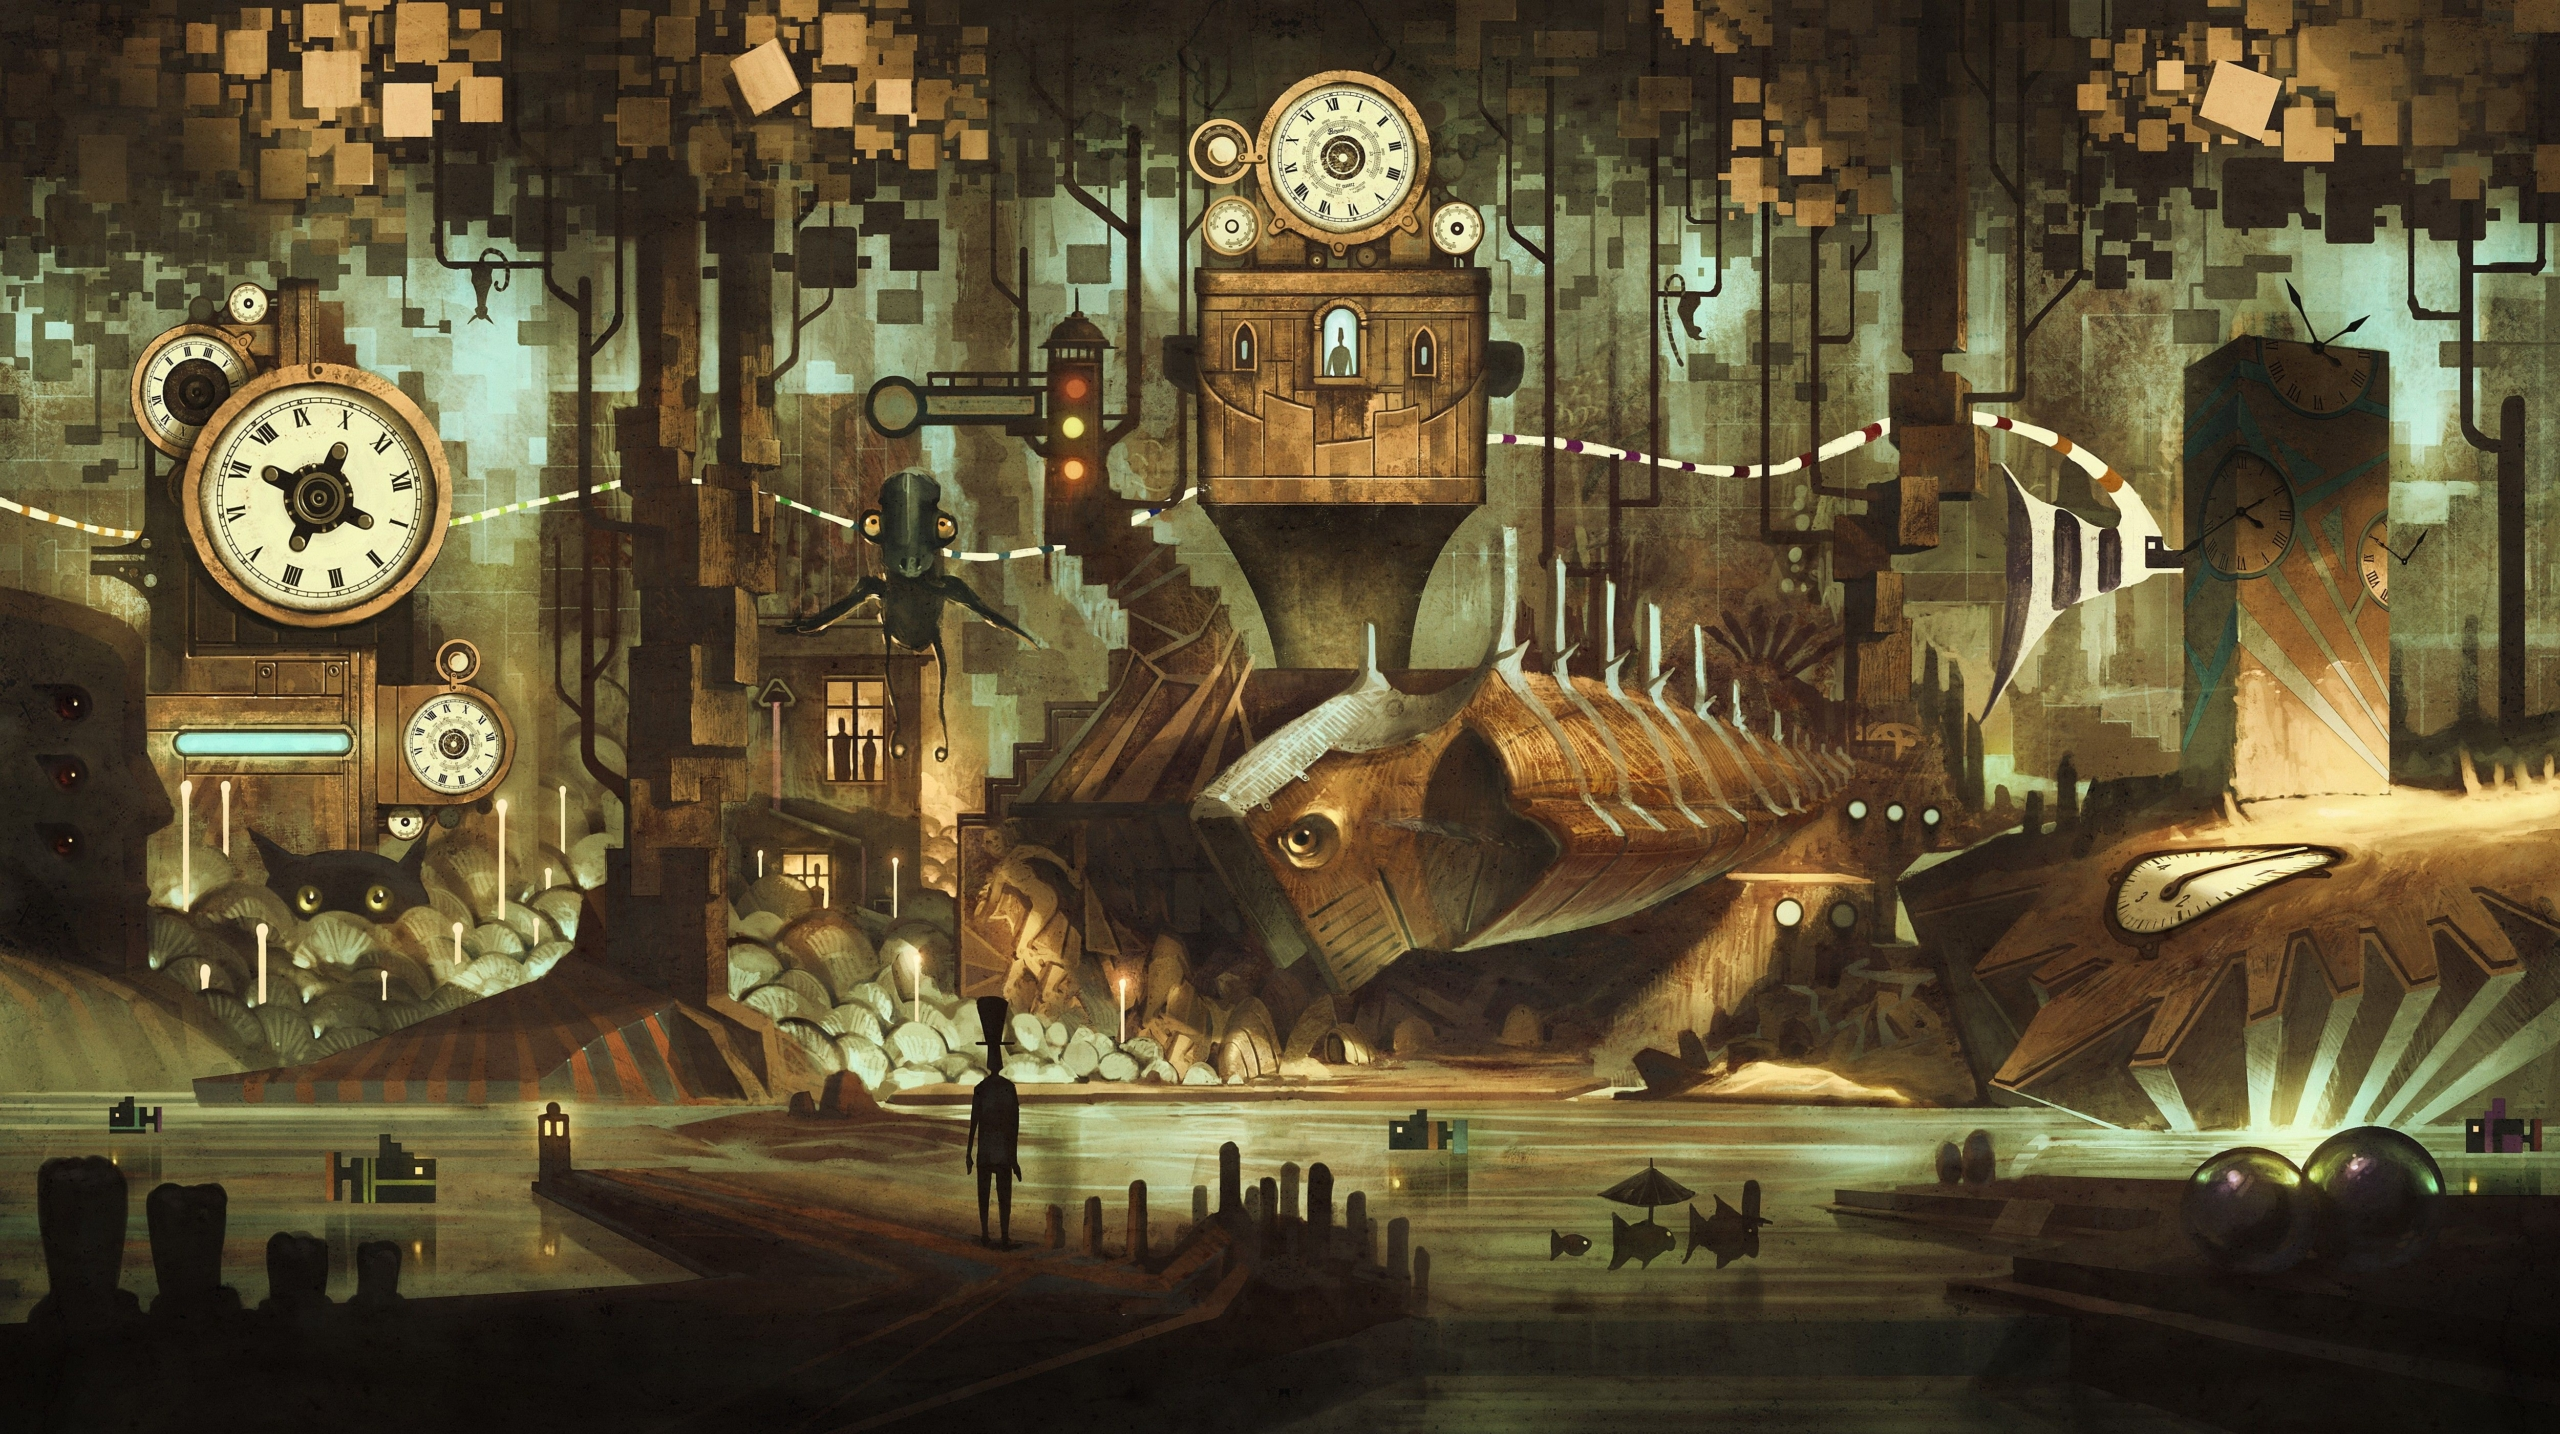 Steampunk Picture designs – The Best background Modern Design You Can Make Yourself!